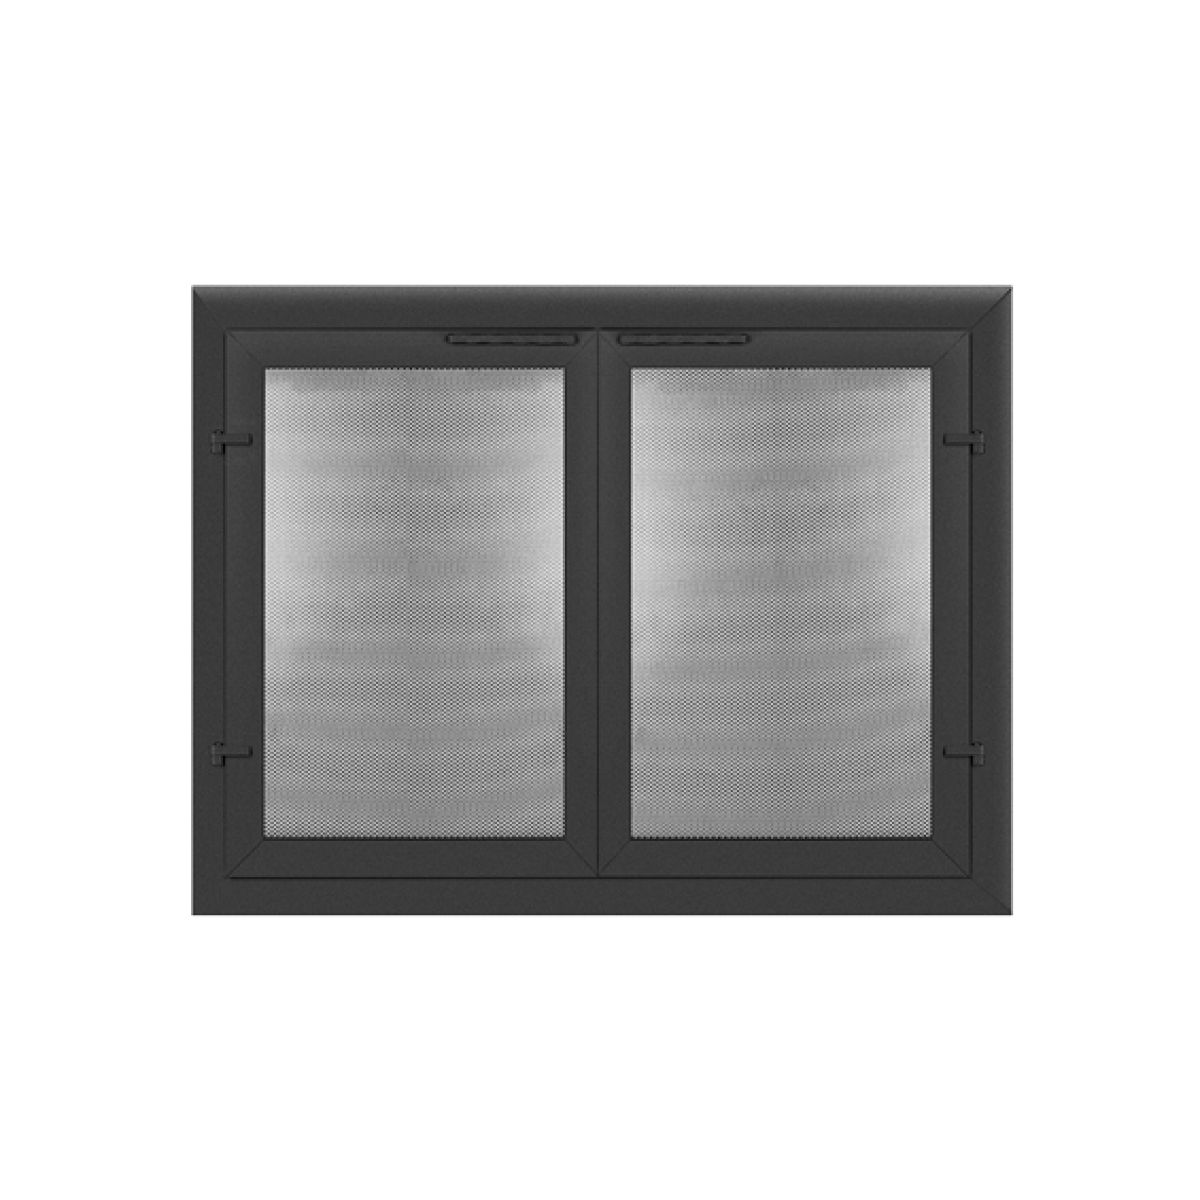 Normandy sparkguard mesh fireplace doors tarnish free anodized